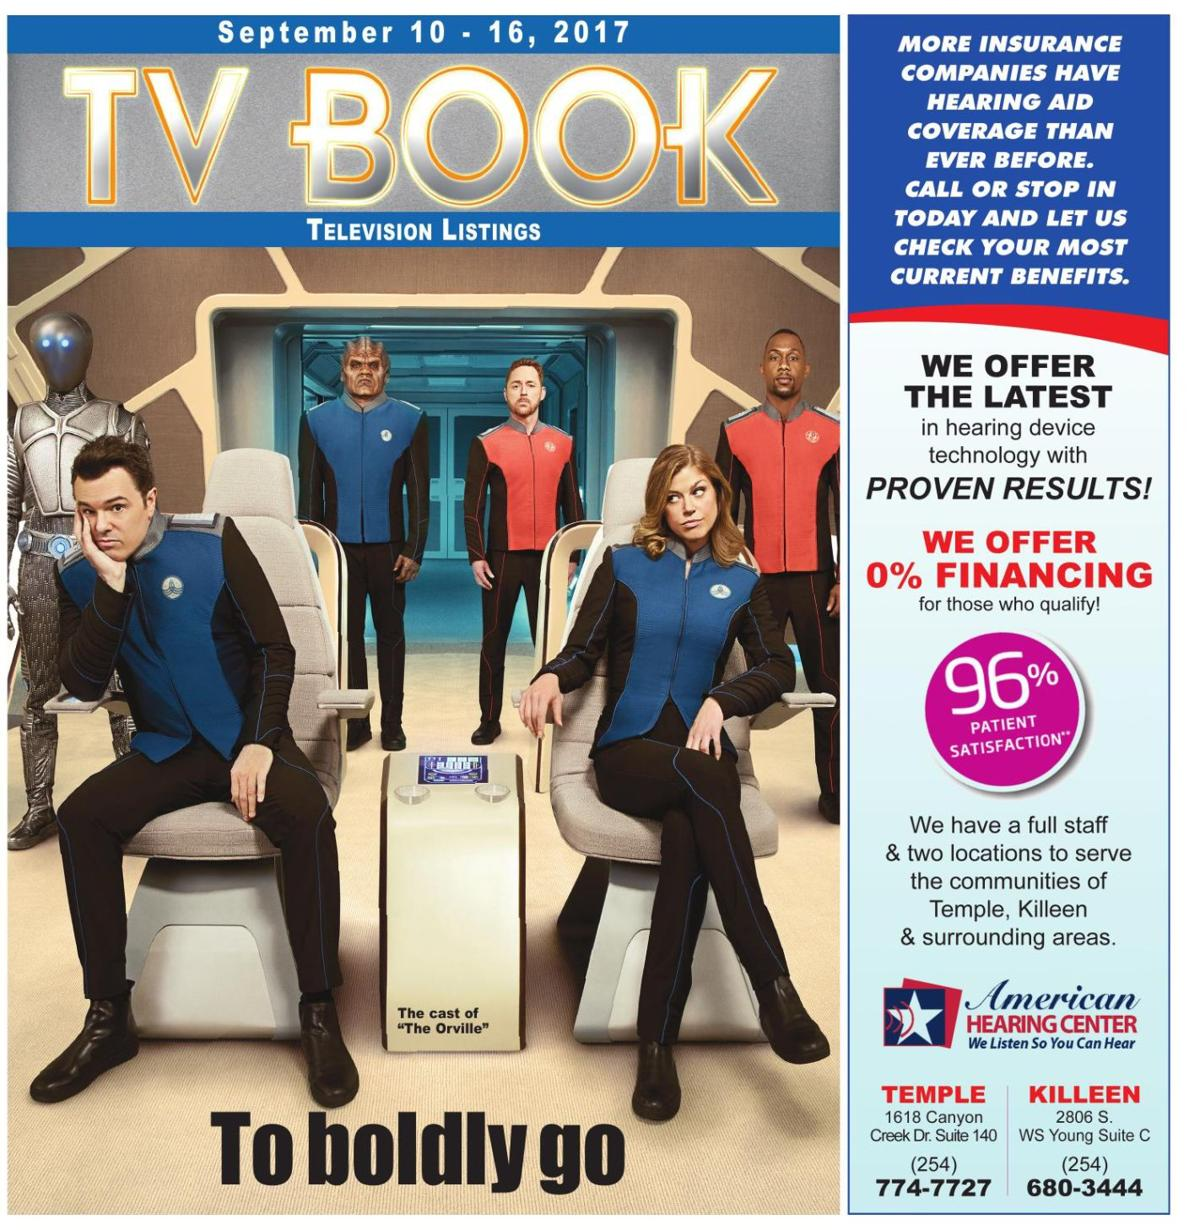 TV Book September 10th - 16th